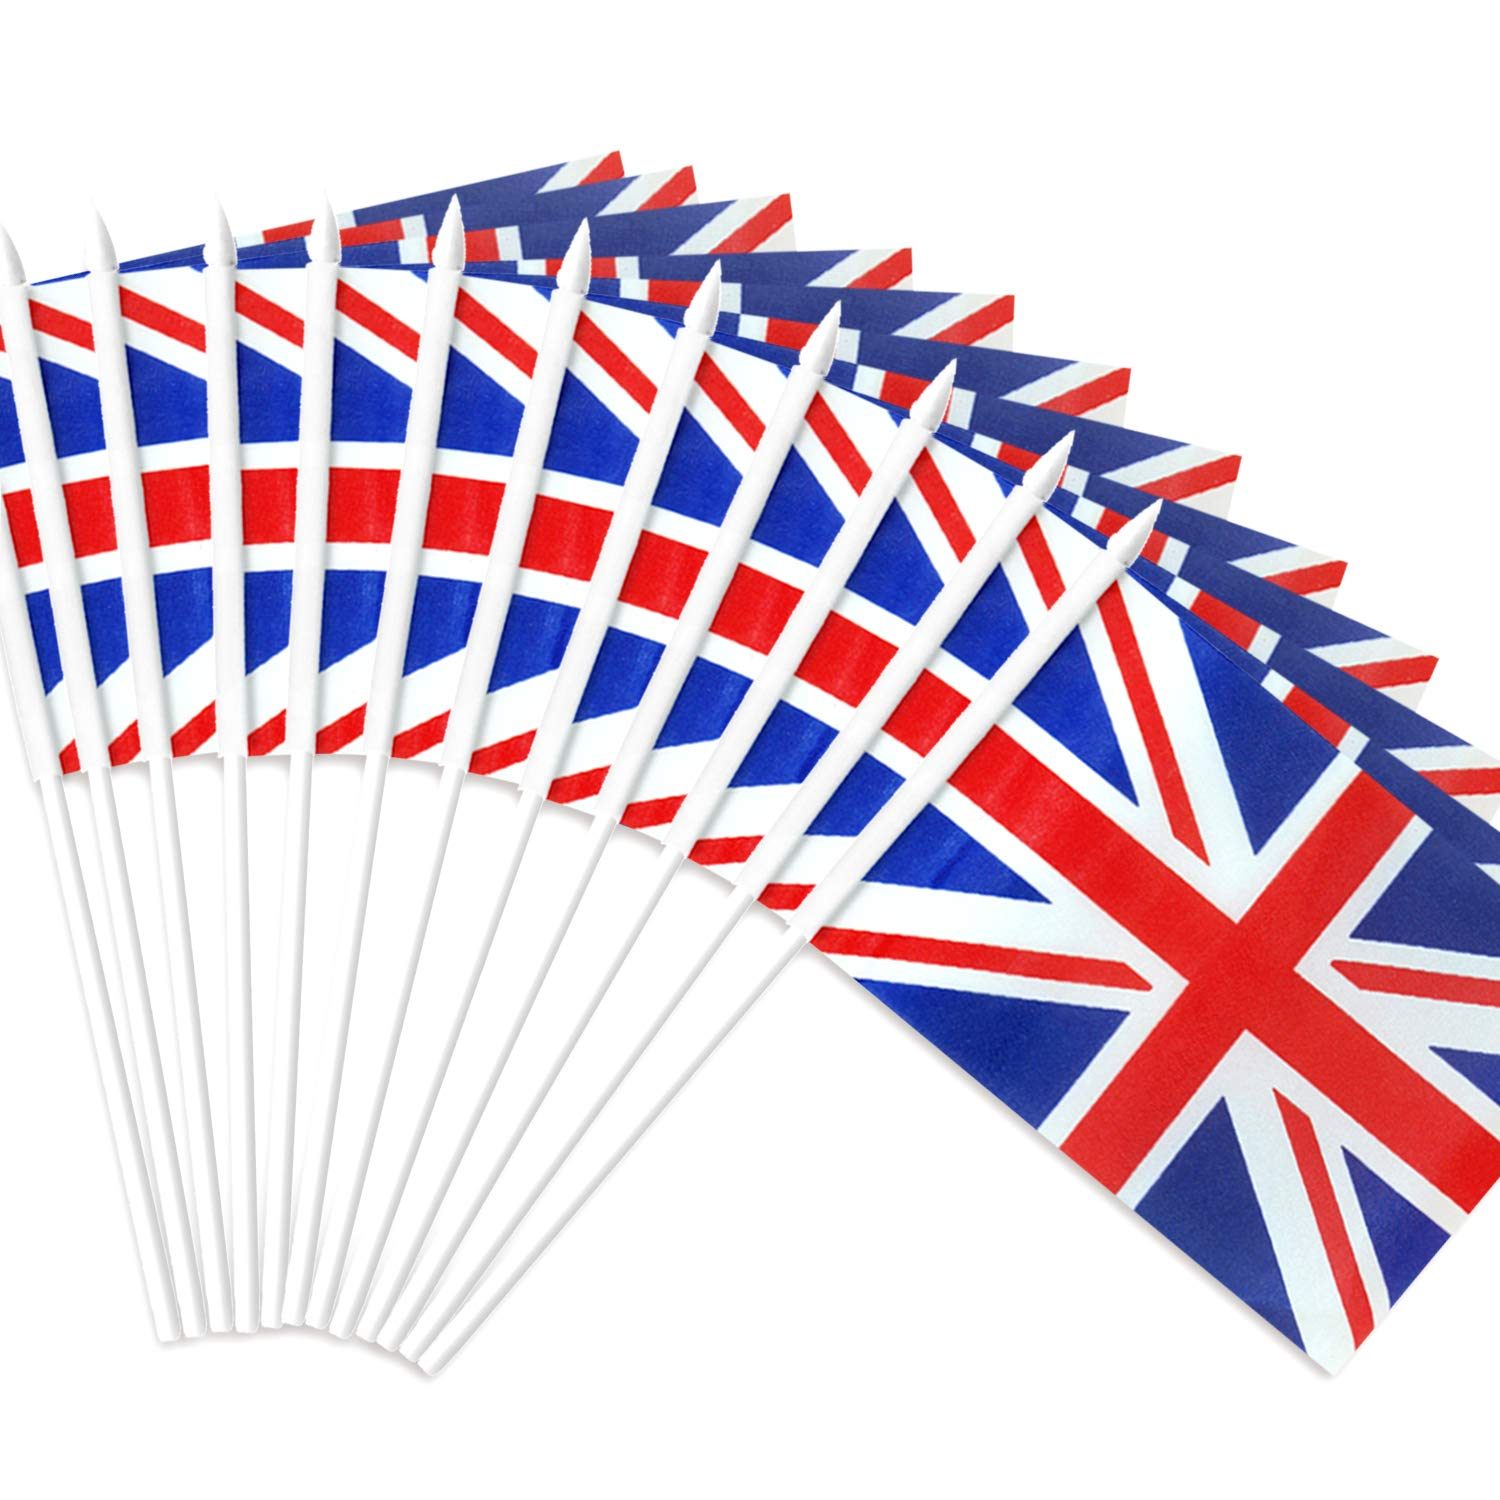 """Anley British Union Jack Stick Flag, Great Britain 5x8 inch Handheld Mini Flag with 12"""" White Solid Pole - Vivid Color and Fade Resistant - UK 5 x 8 inch Hand Held Flags with Spear Top (1 Dozen)"""